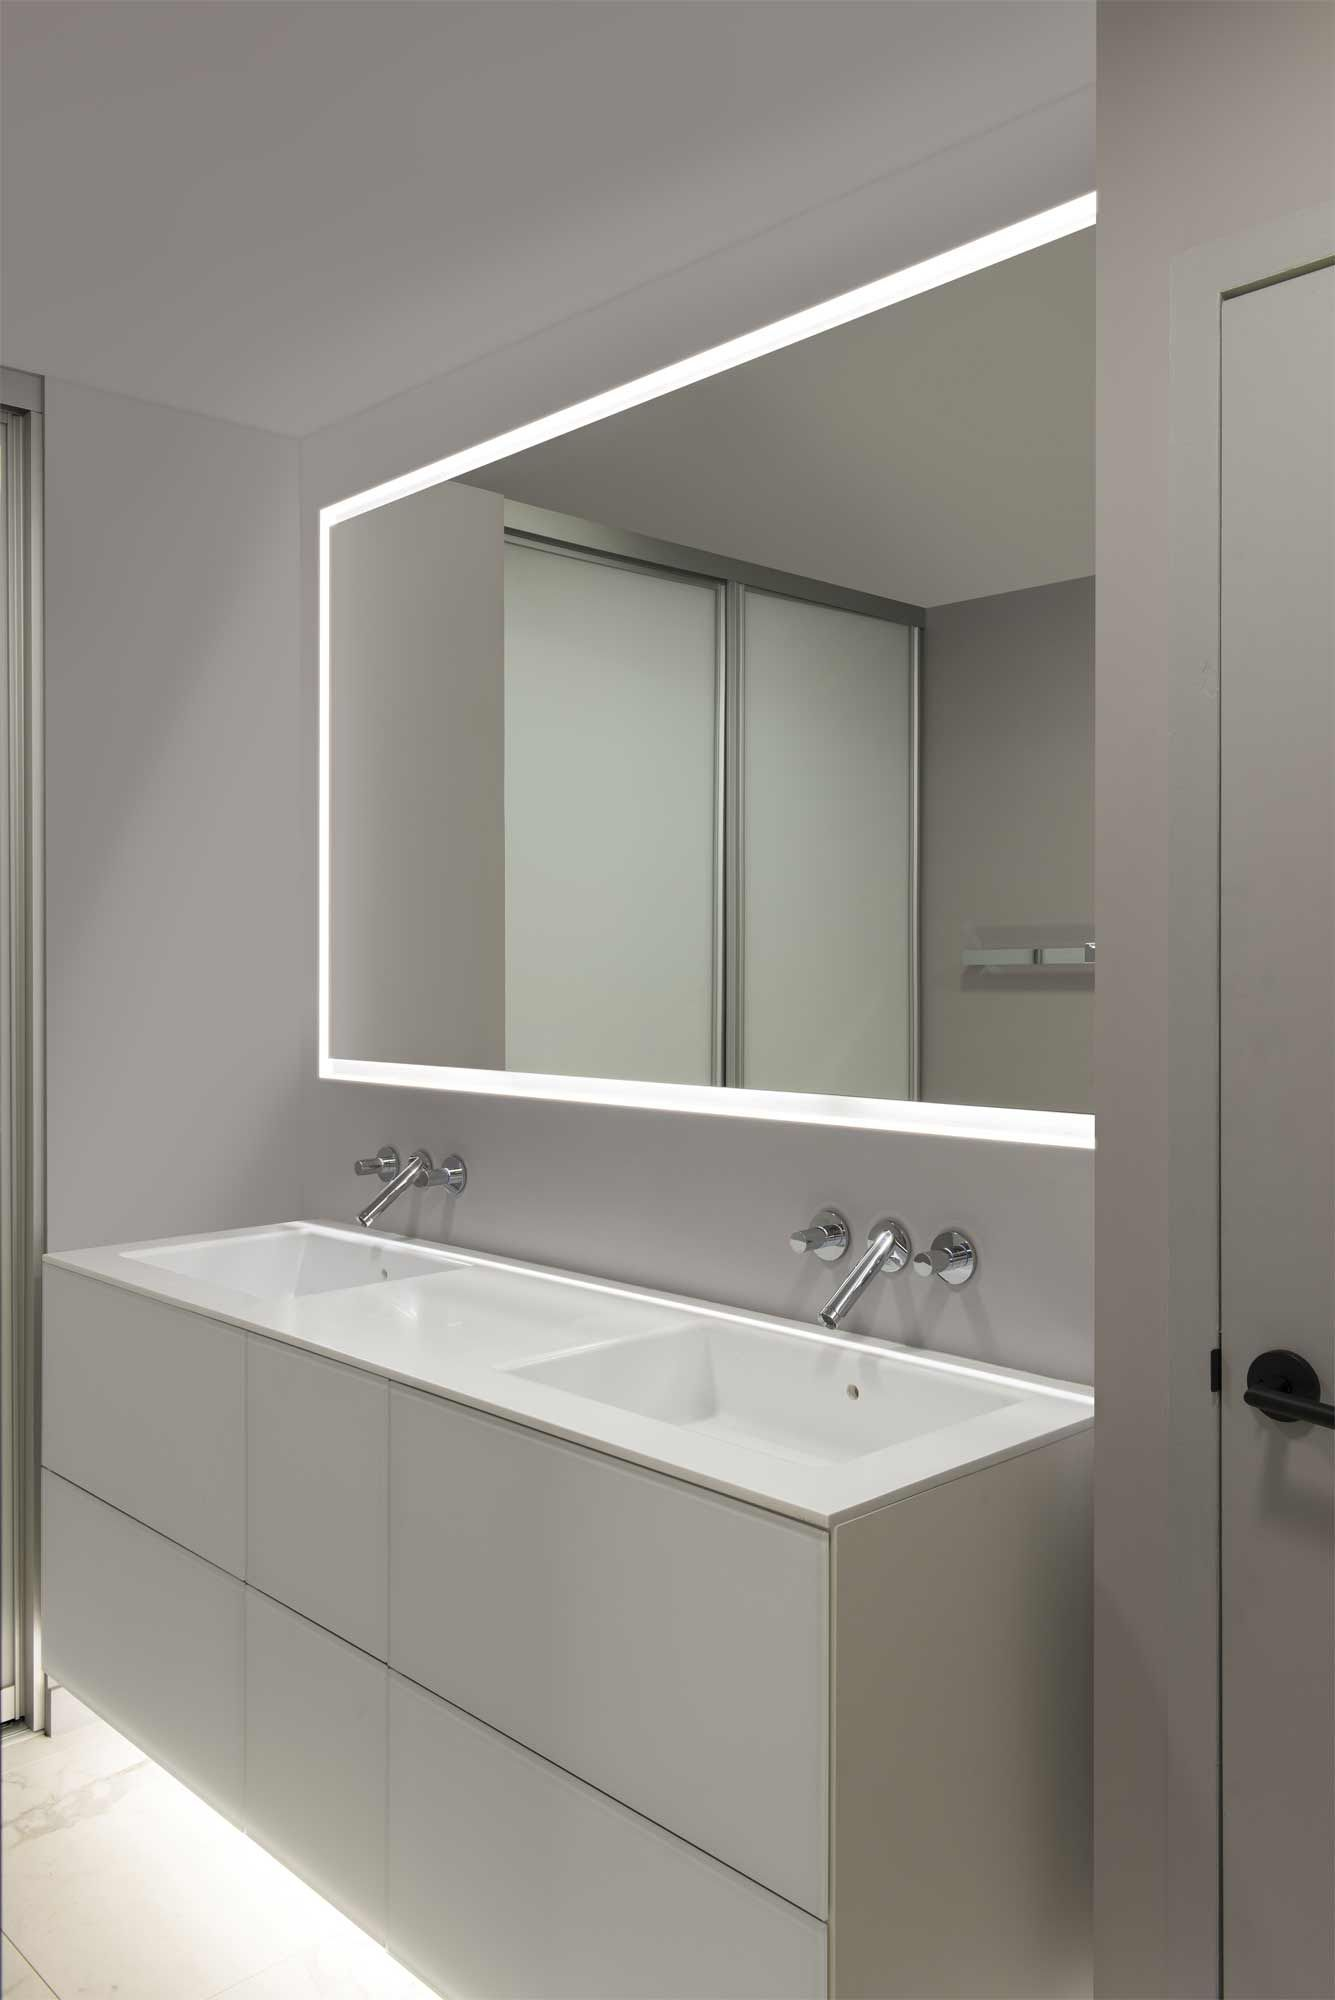 ideal bathroom vanity lighting design ideas. With Beautiful Lighted Mirrors, Bathroom Vanity Lighting, And More, You Can Create The Ideal Lighting Environment To Get Ready For Your Day Or Relax After A Design Ideas